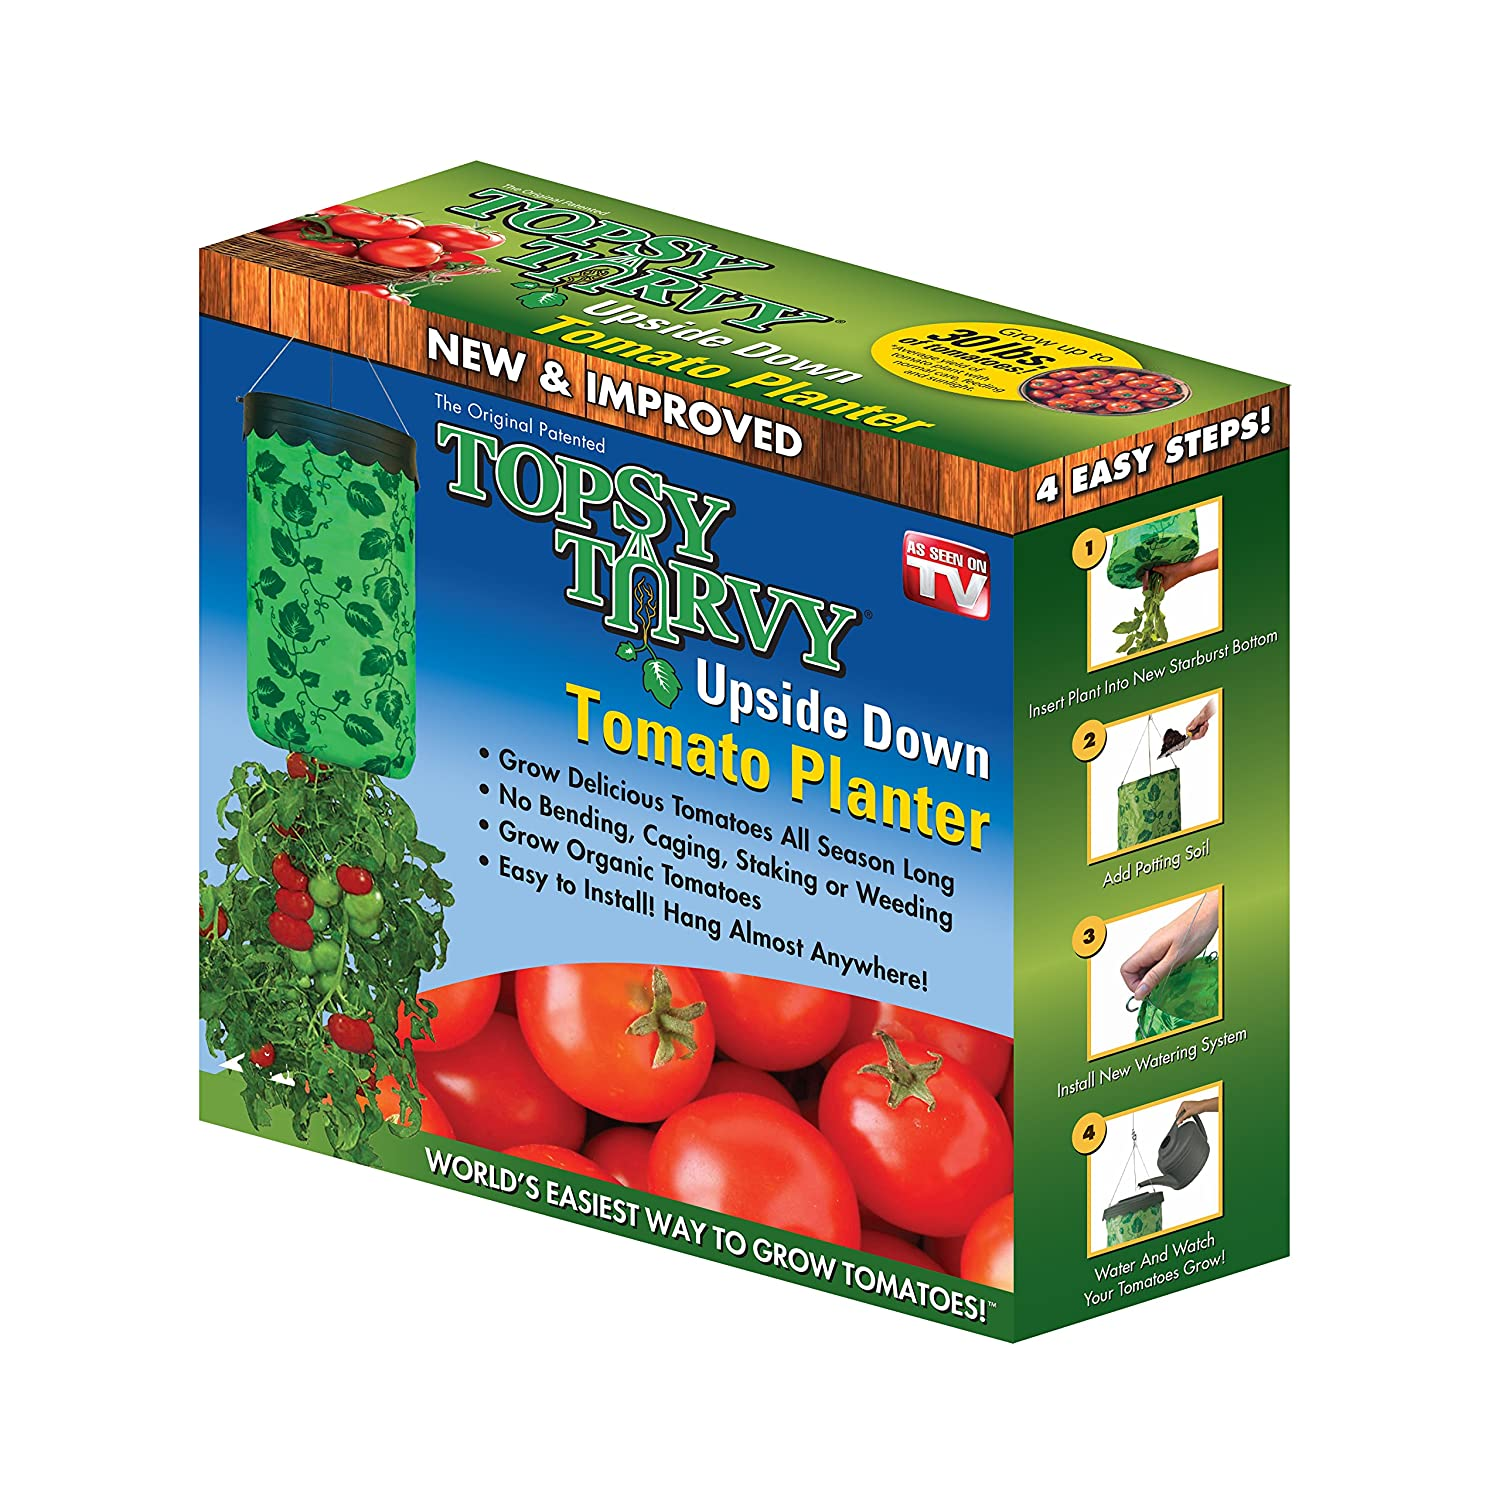 Amazon Topsy Turvy New & Improved Upside Down Tomato Planter